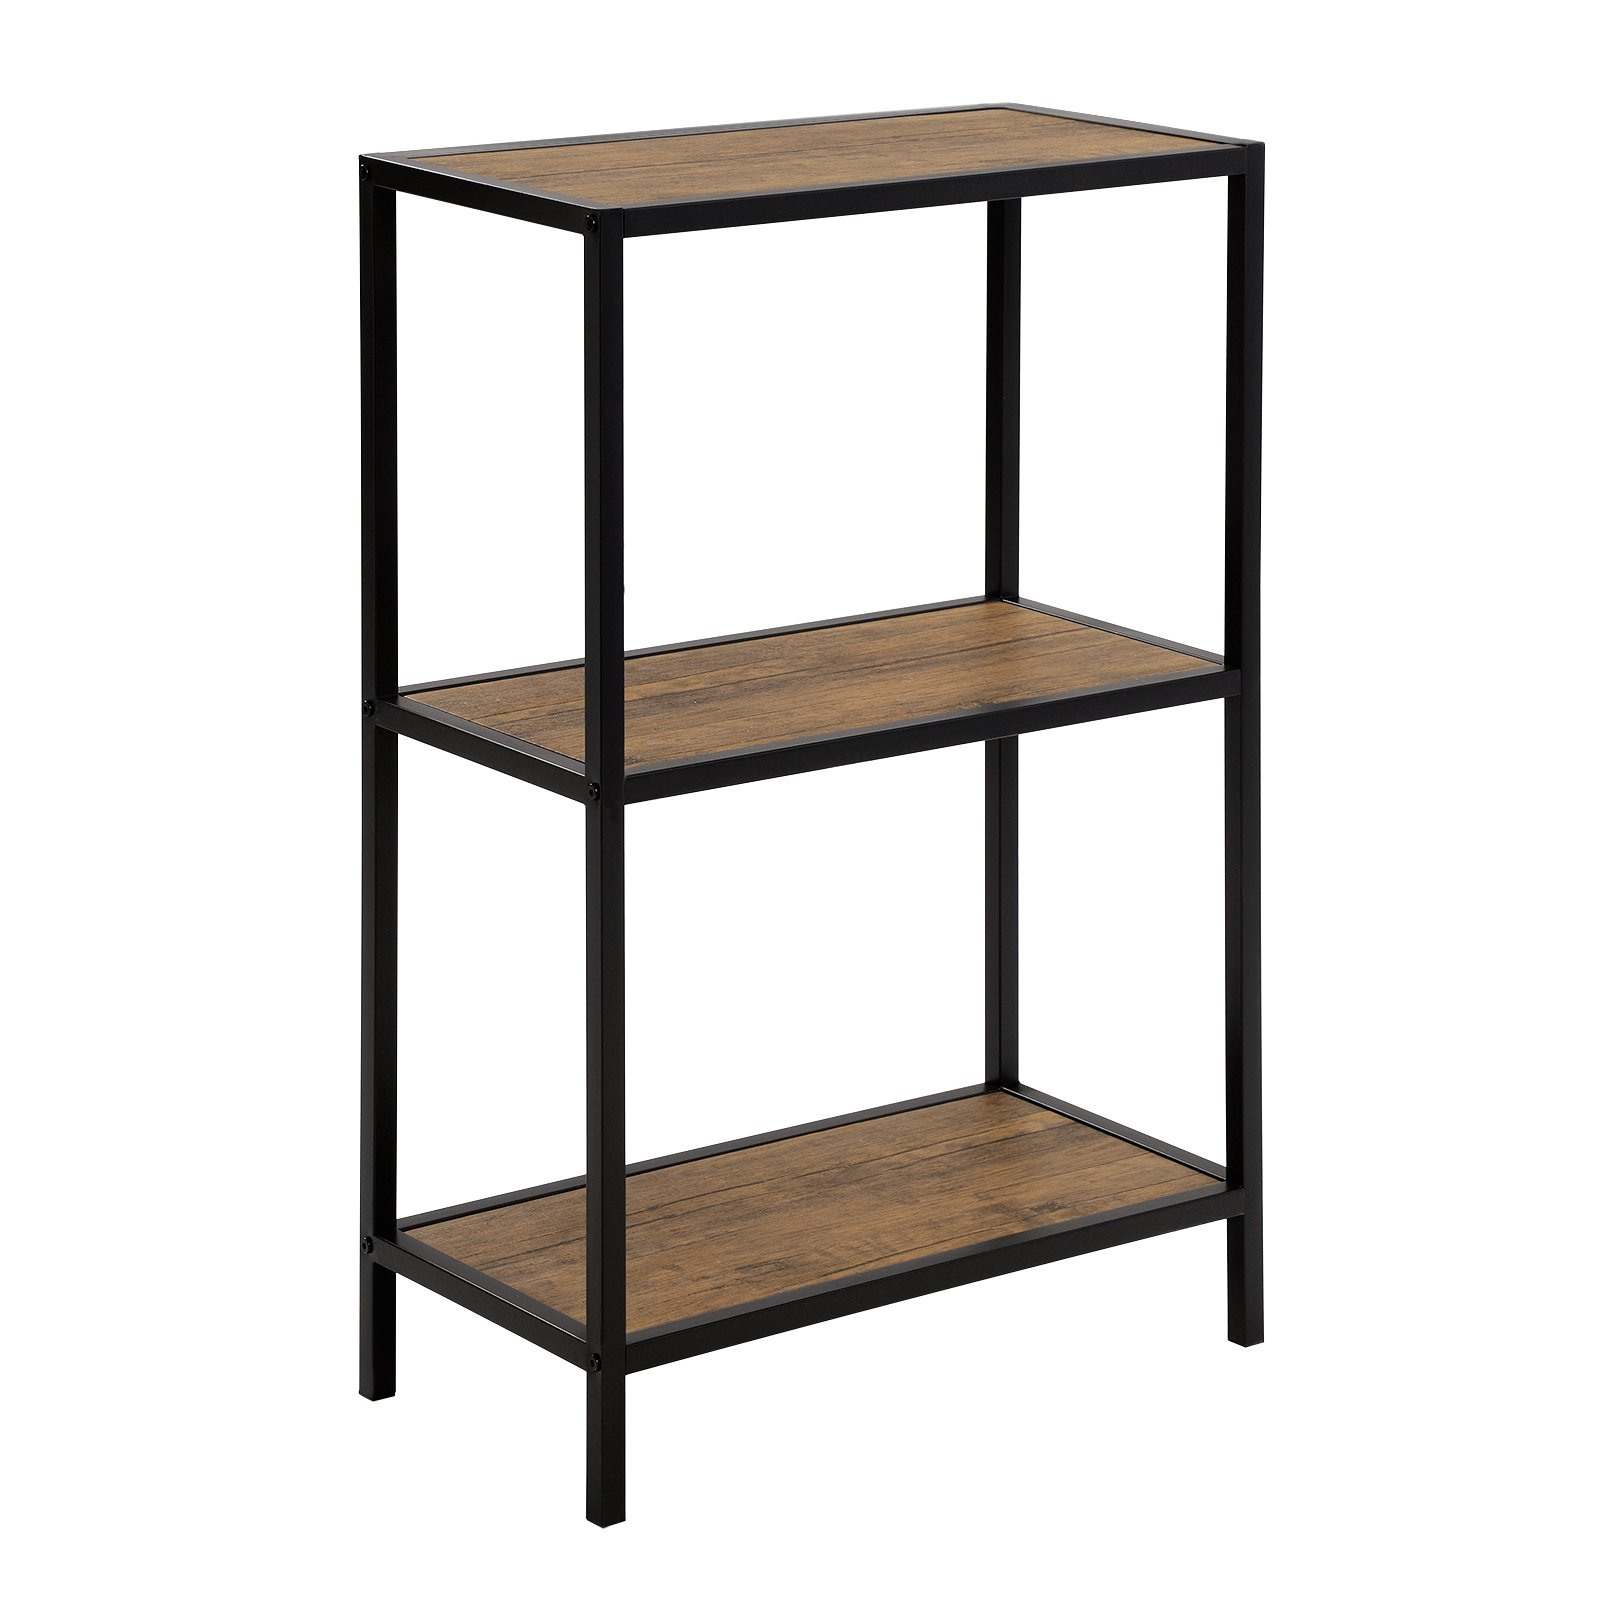 SONGMICS 3-Tier Storage Shelf Rack, Multifunctional Bookcase, Metal Frame Display Rack,Shelving Unit for Kitchen, Living Room,Rustic, ULSS90BX